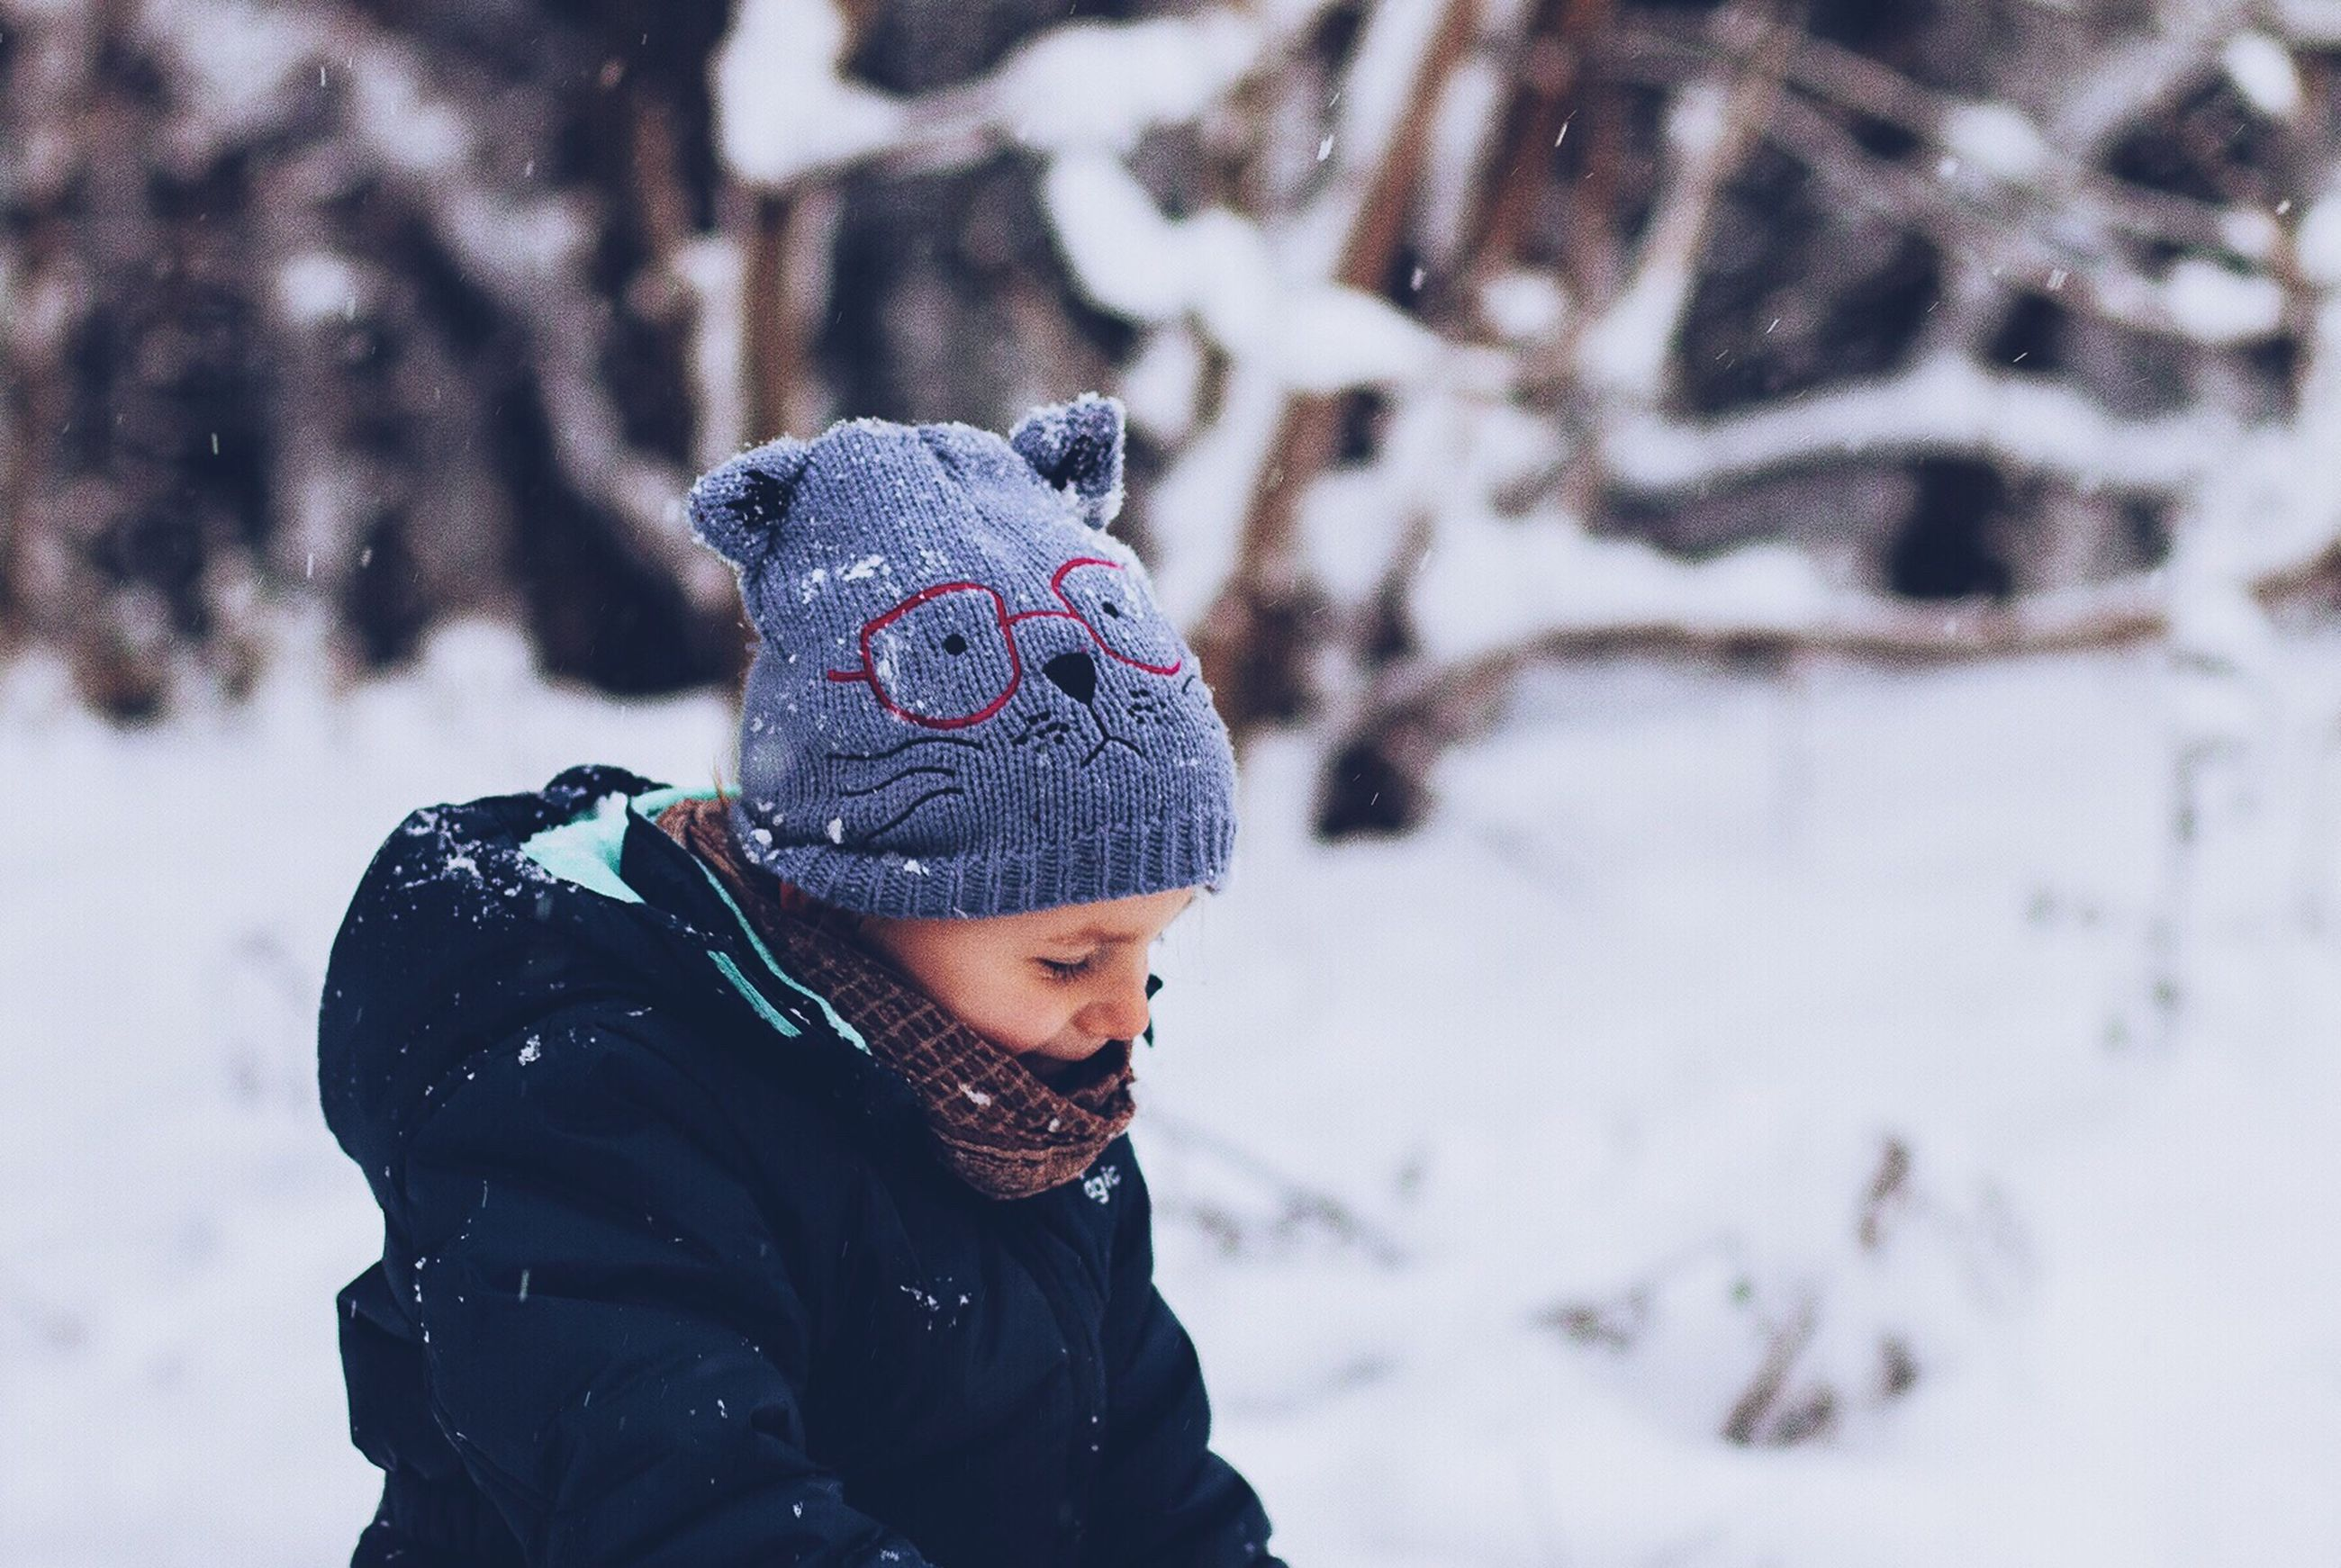 winter, snow, cold temperature, season, weather, warm clothing, covering, lifestyles, leisure activity, frozen, knit hat, focus on foreground, nature, childhood, covered, day, hood - clothing, hooded shirt